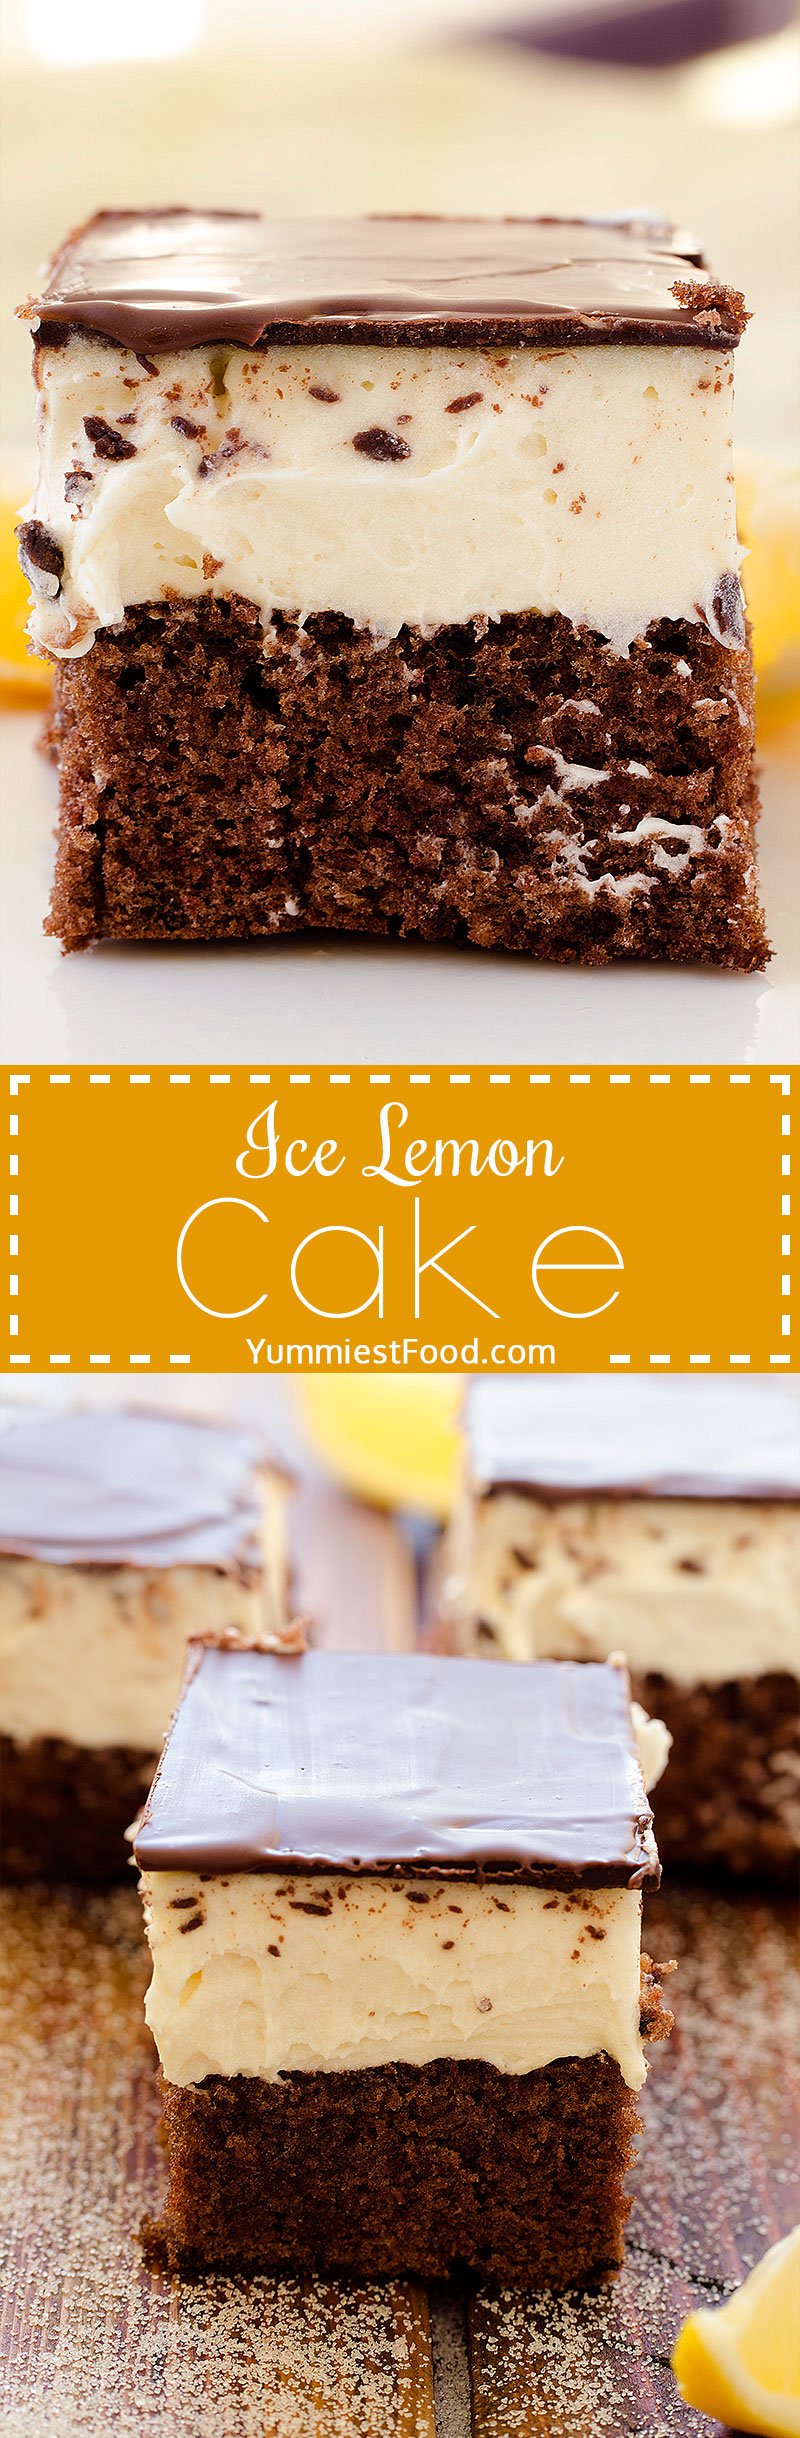 Ice Lemon Cake - Try to make Ice lemon cake, very quick, easy, creamy, so soft and perfect for every occasion